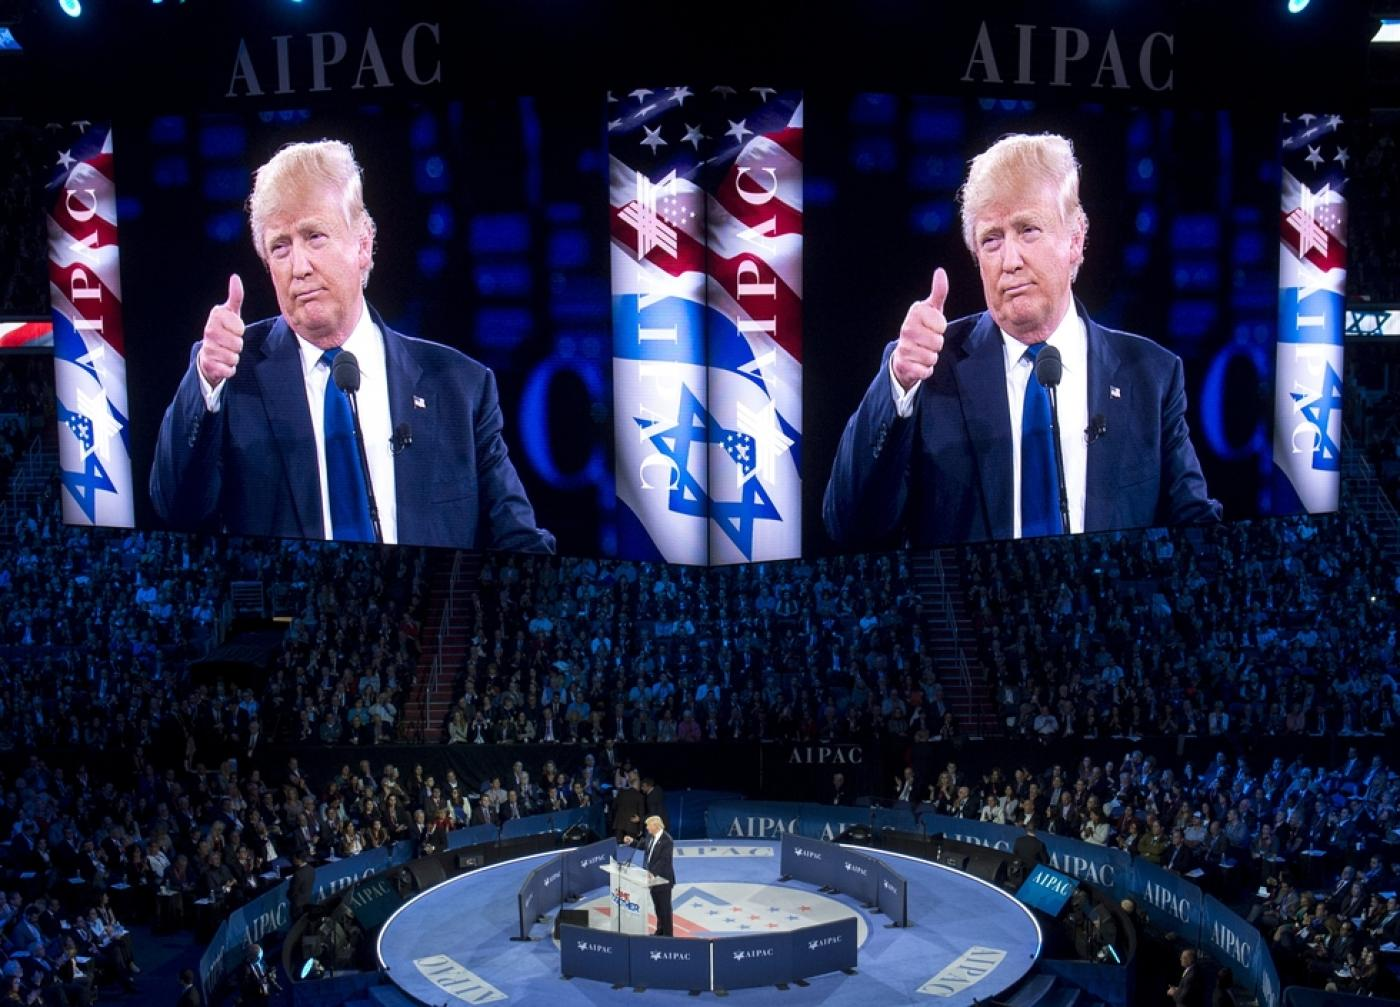 94067246ee Clearly, US Republican Party's presidential candidate Donald Trump is  imitating Israel - and even more clearly, Israel loves the compliment